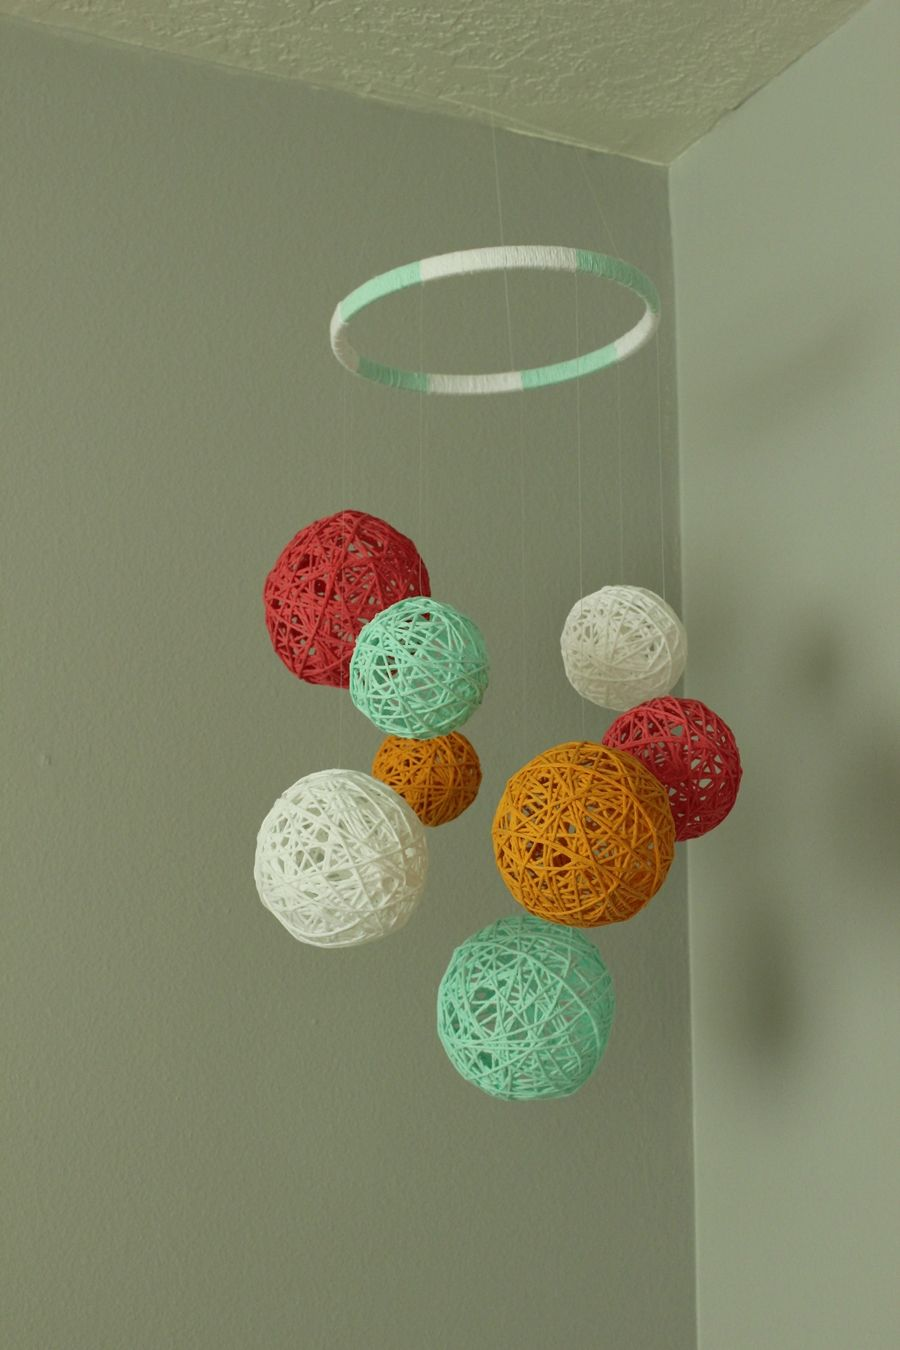 DIY Baby Mobile U2013 A Cute And Versatile Project For A Nursery